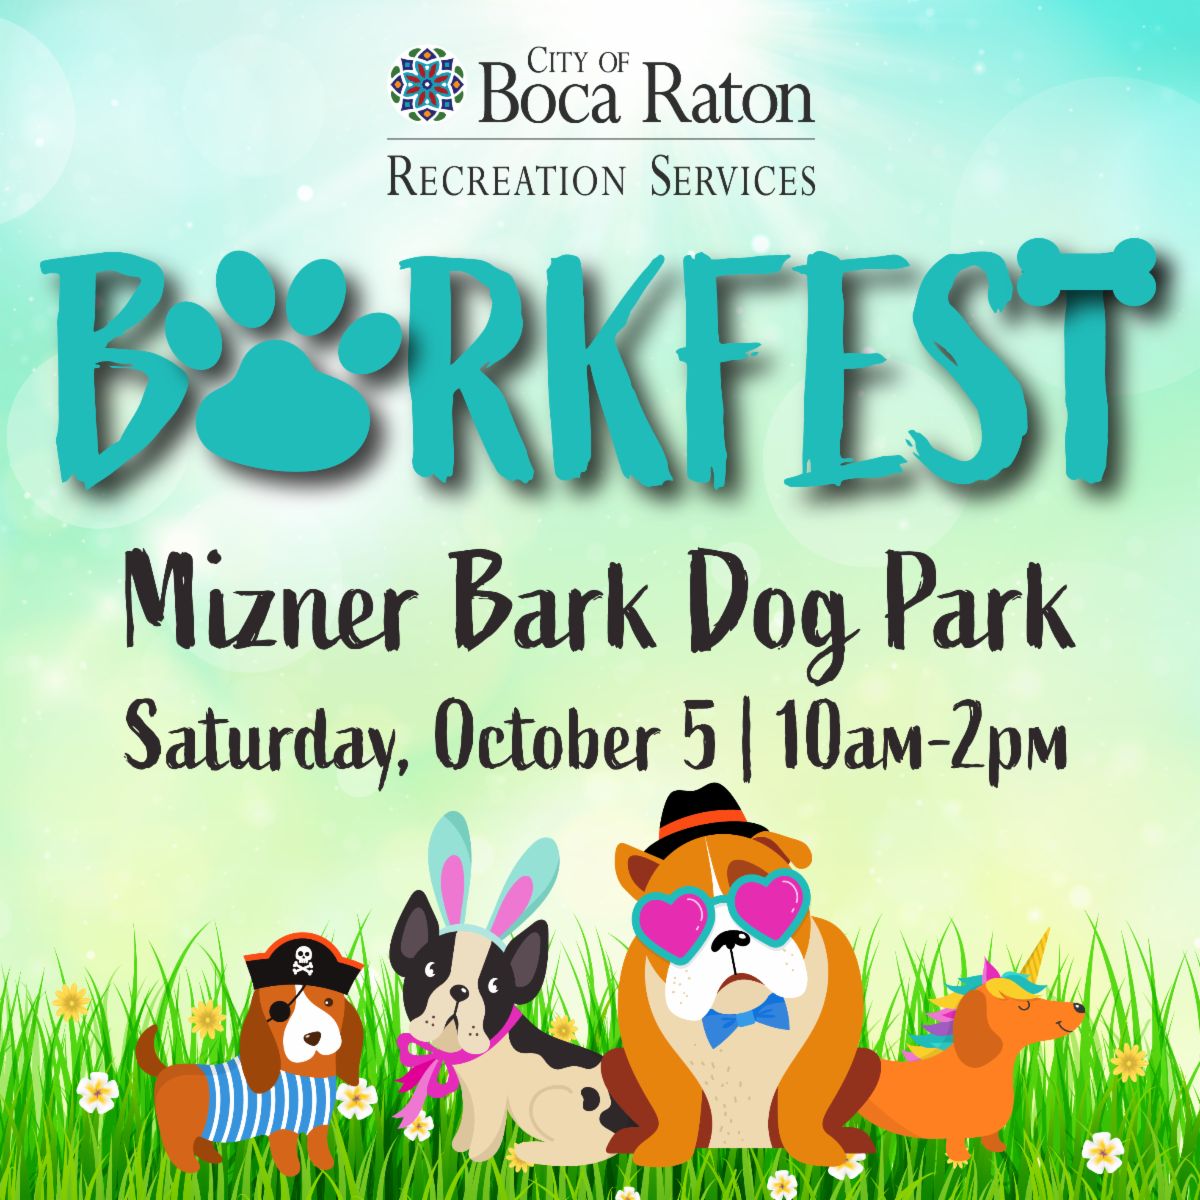 city of boca raton recreation services. barkfest. mizner bark dog park. saturday october 5 10am to 2pm